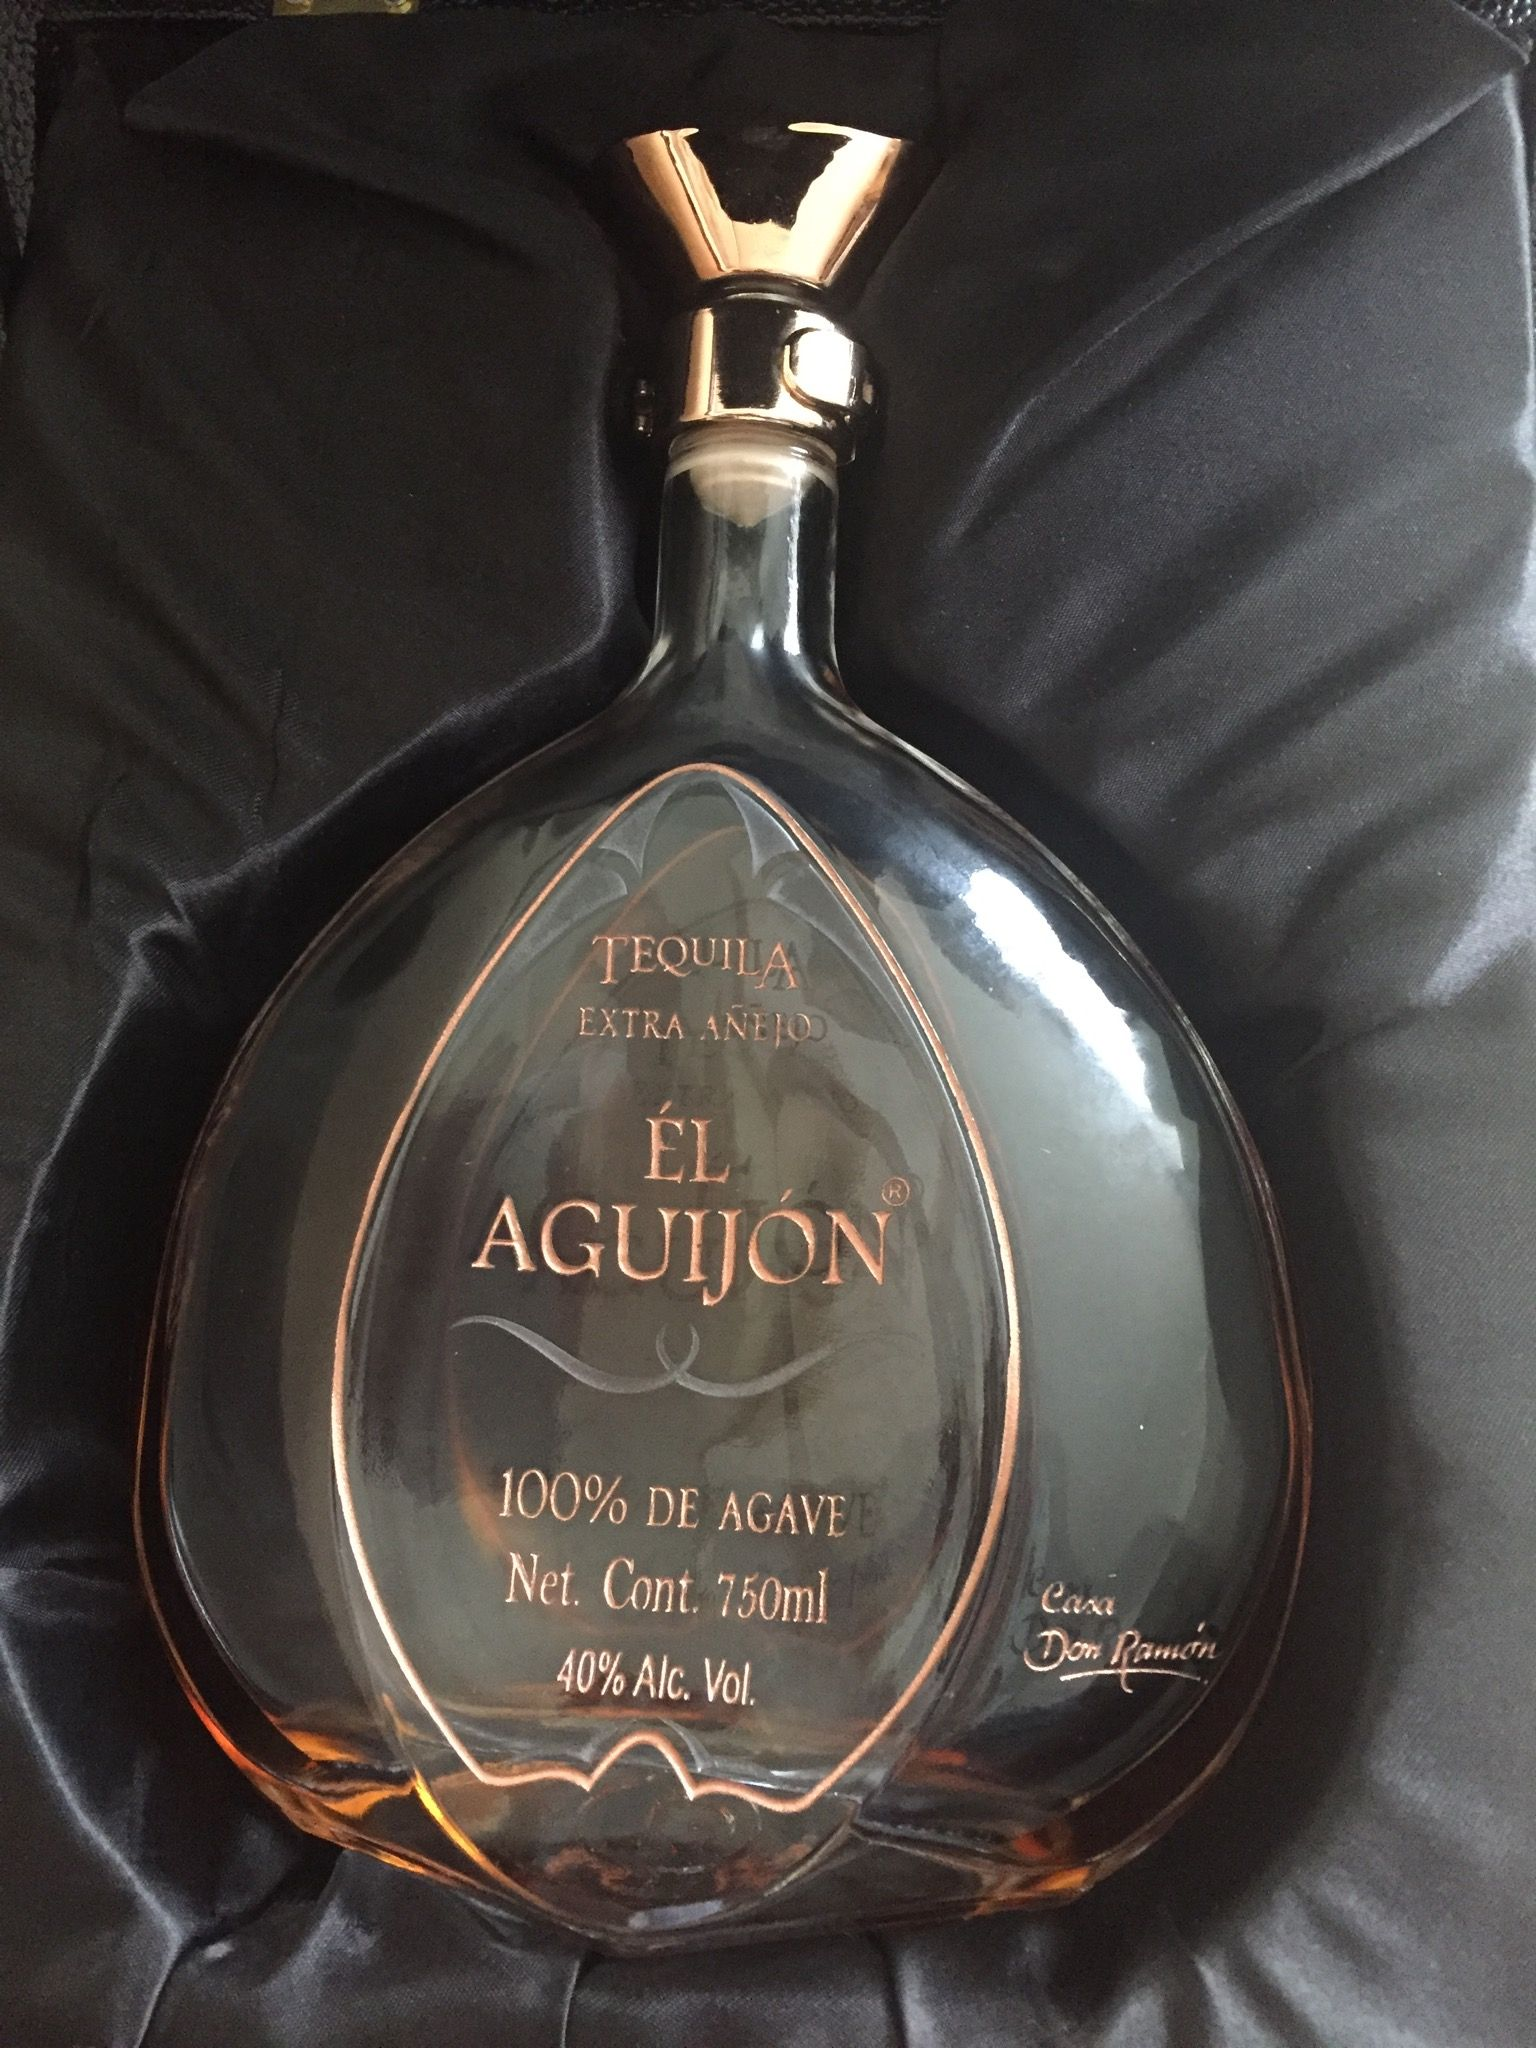 One Of The Best Tequilas In World 27 000 Usd Don Ramón